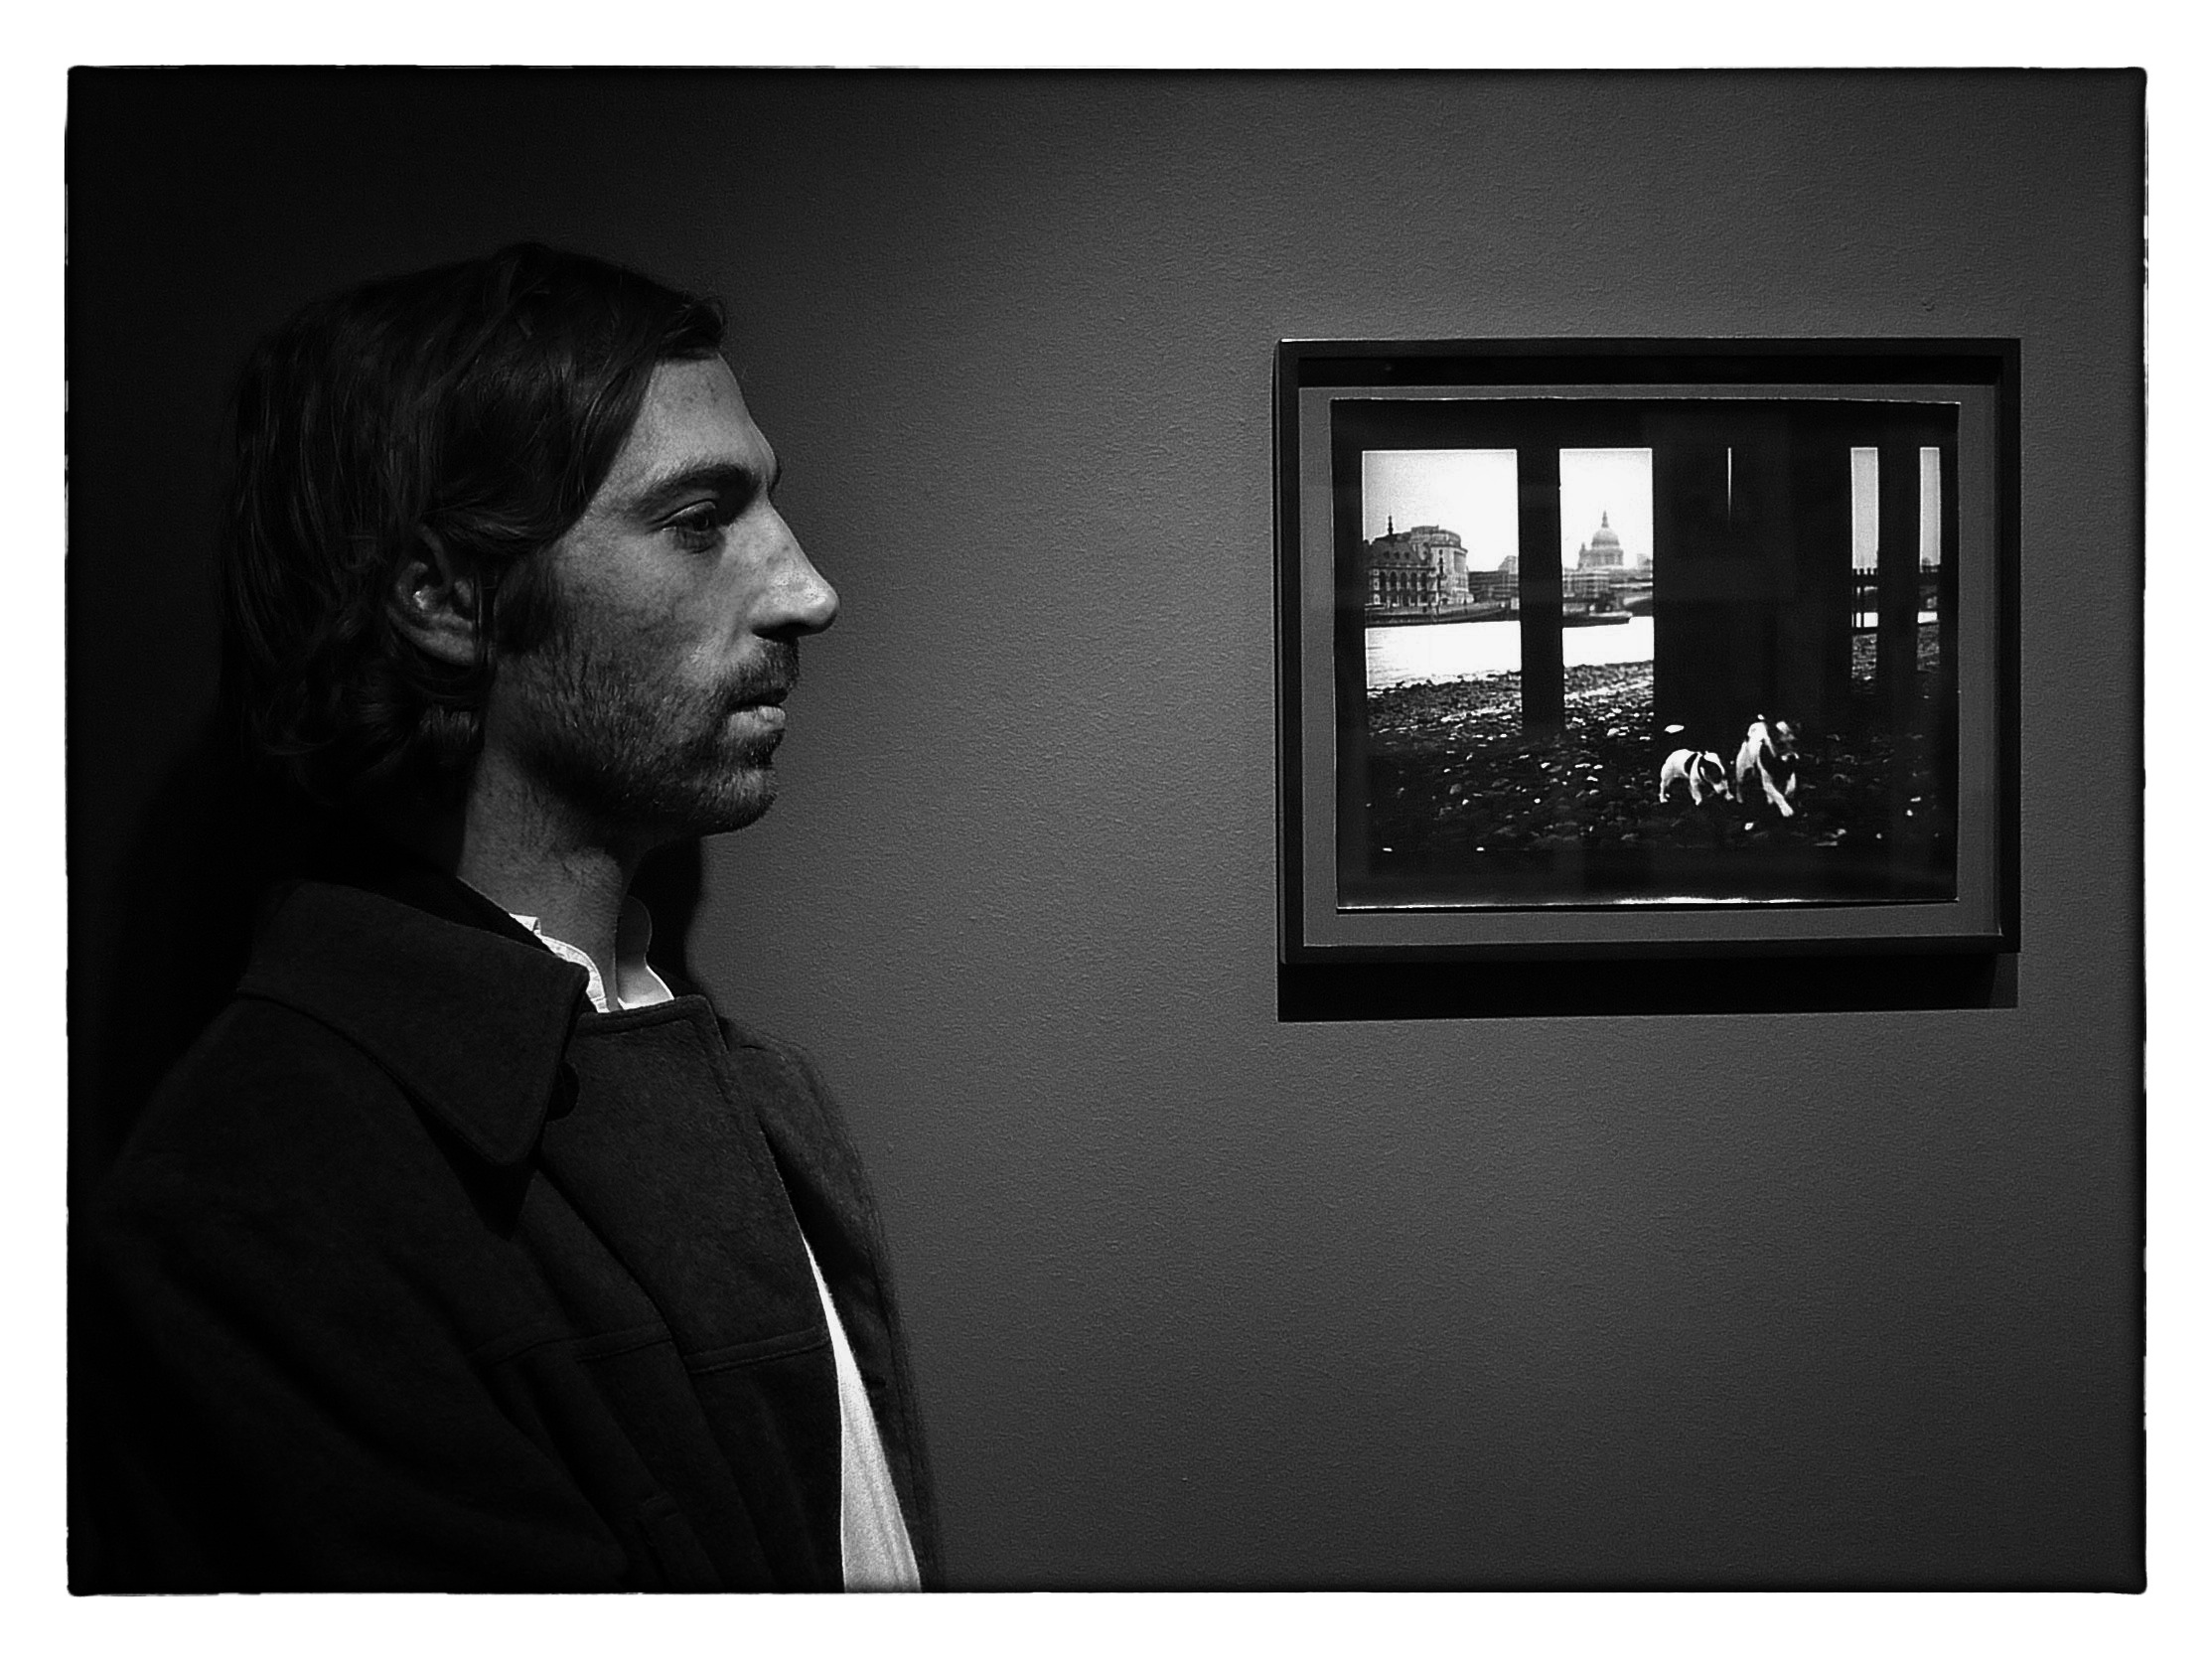 Giacomo Brunelli in front of one of his images